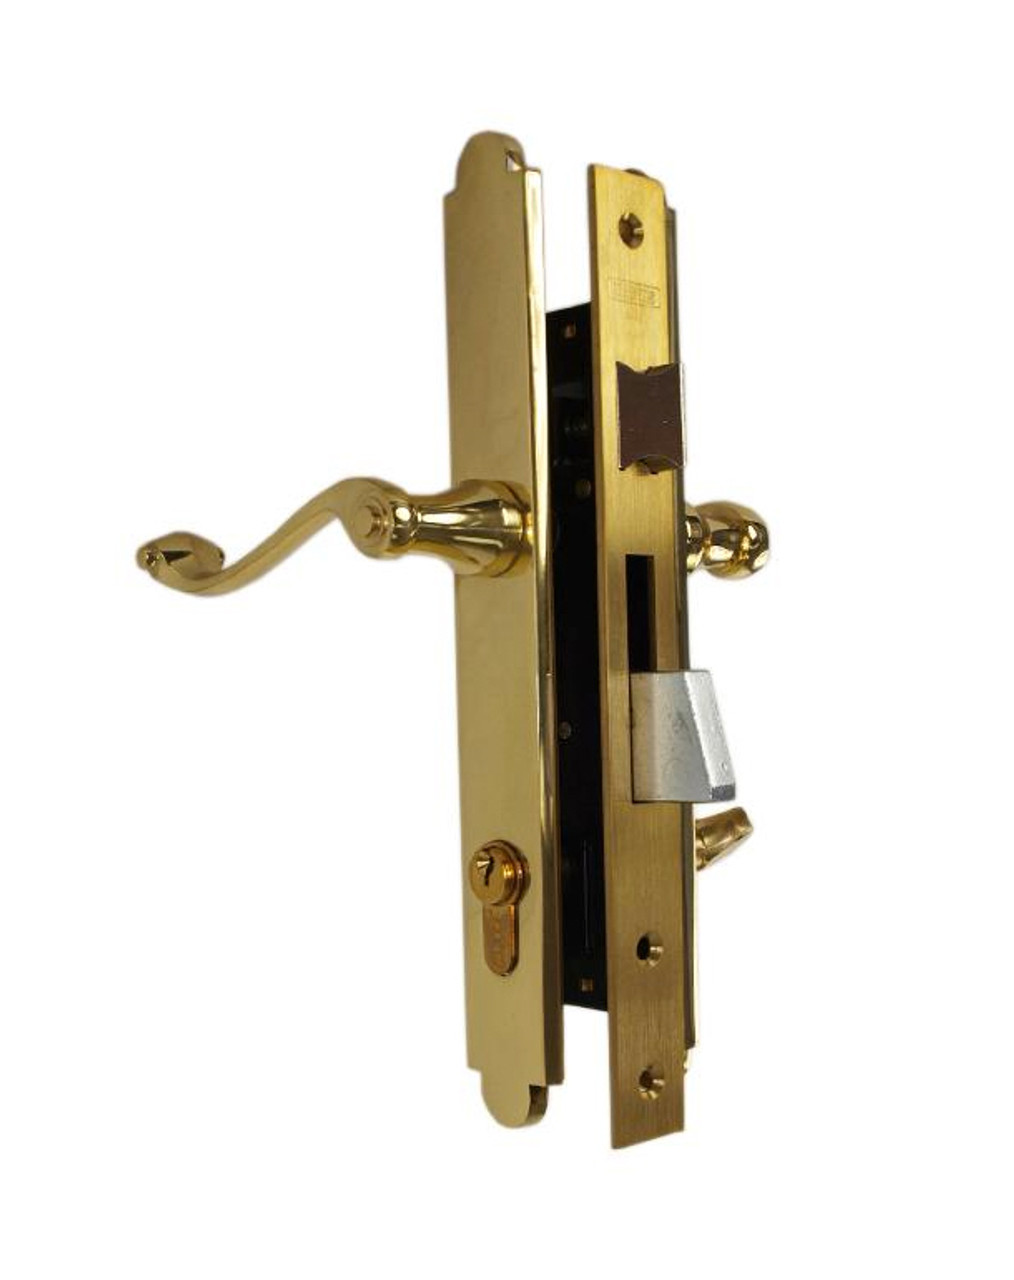 Beau ED Locks U0026 Security